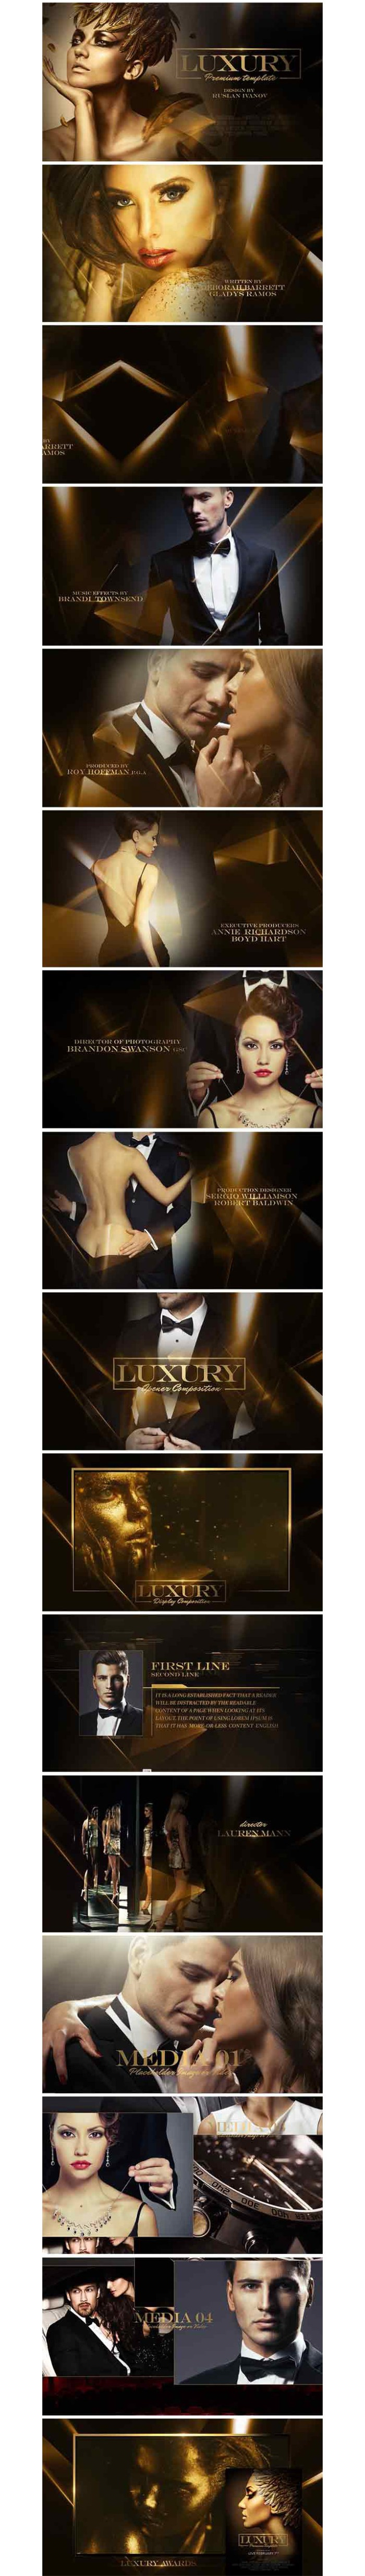 videohive_luxury_awards_package_19383361